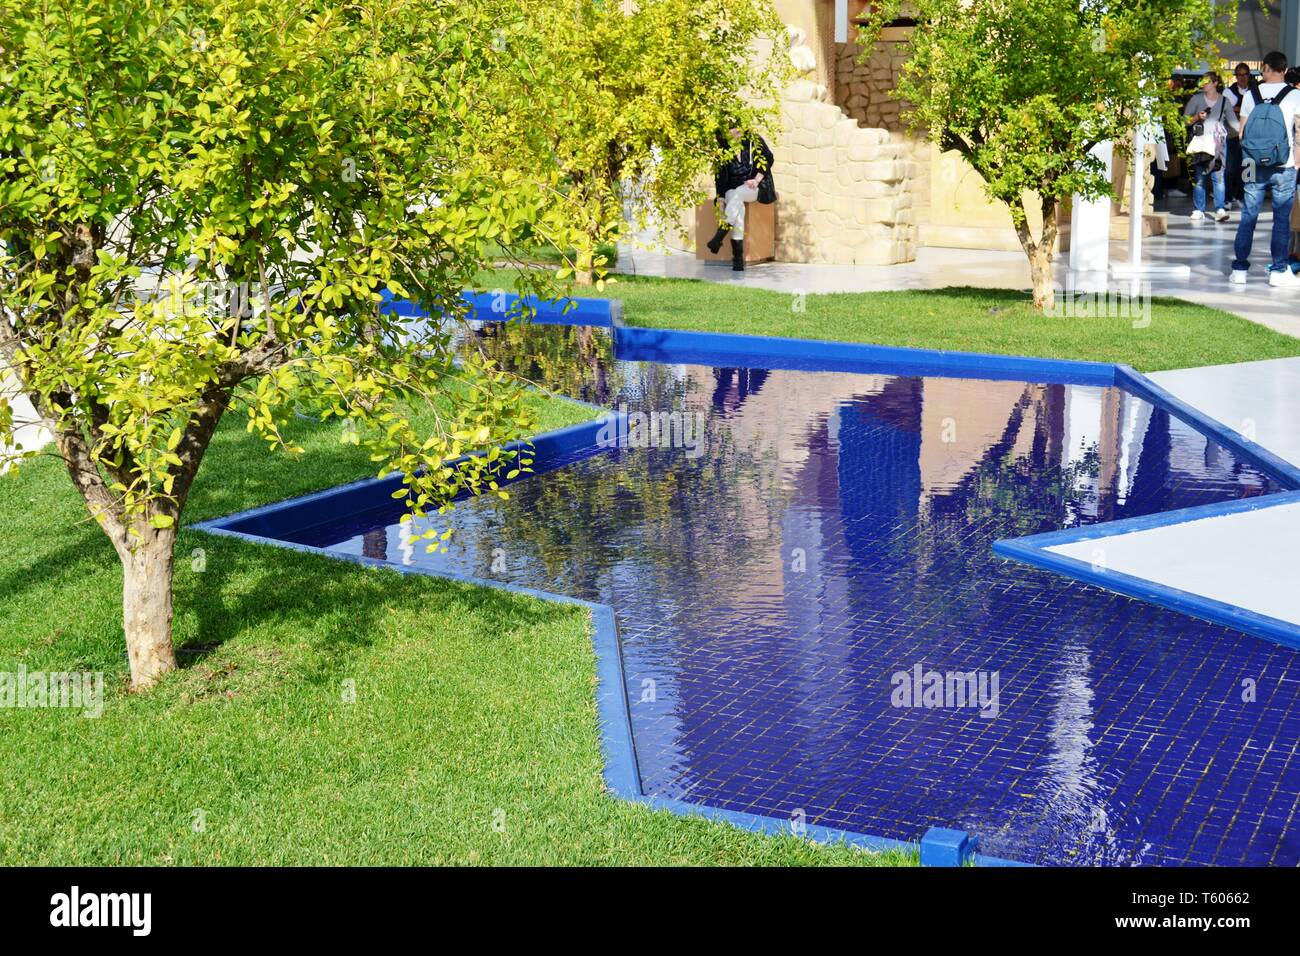 Milan/Italy - October 5, 2015: Close-up view to a beautiful blue pool in the garden of the Turkey EXPO Milano 2015 pavilion with ceramic tiles bottom, - Stock Image